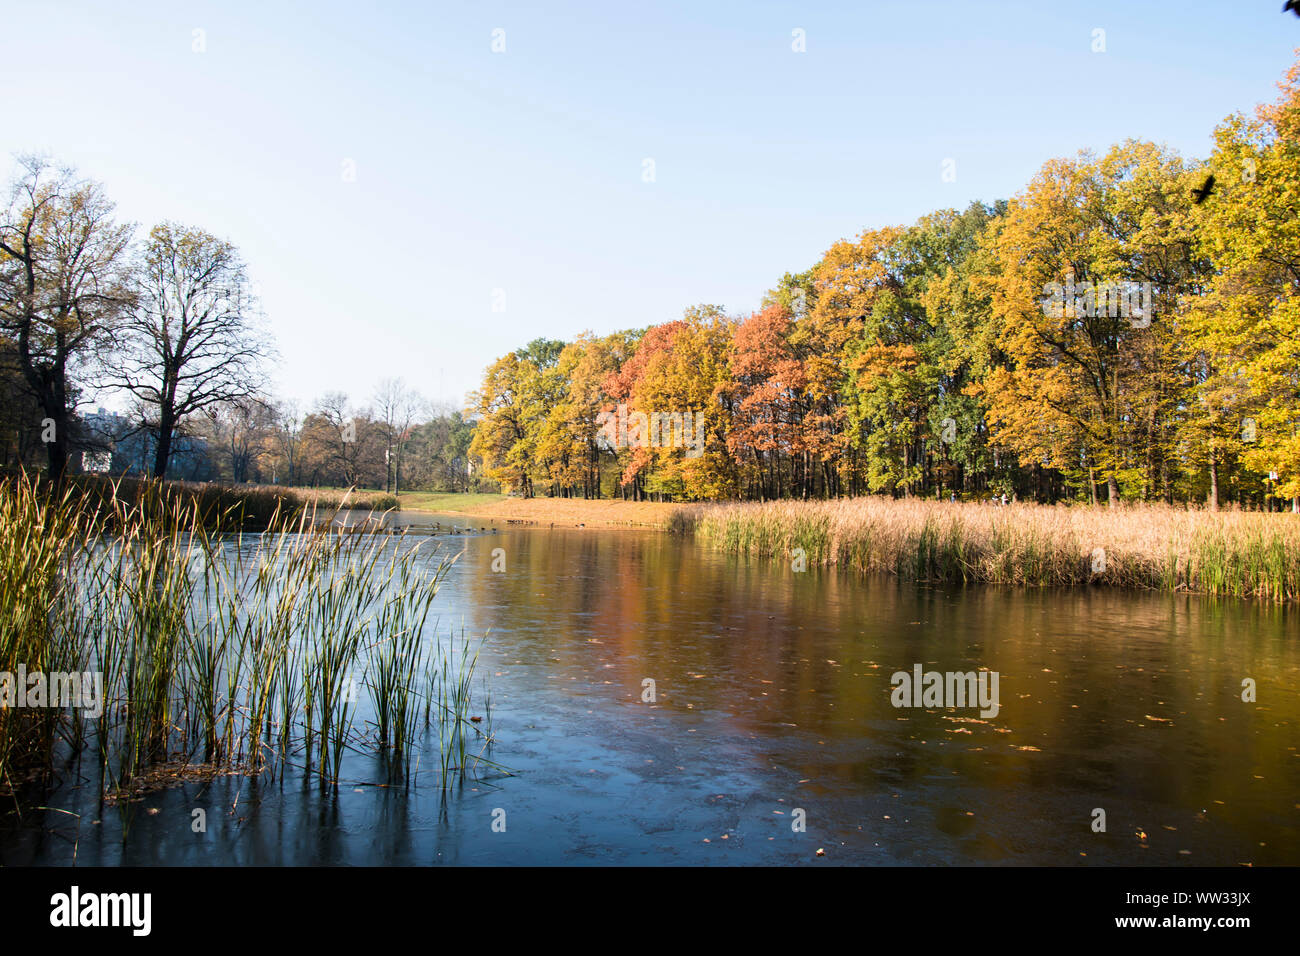 lake pond and tree in the park photo Beautiful picture